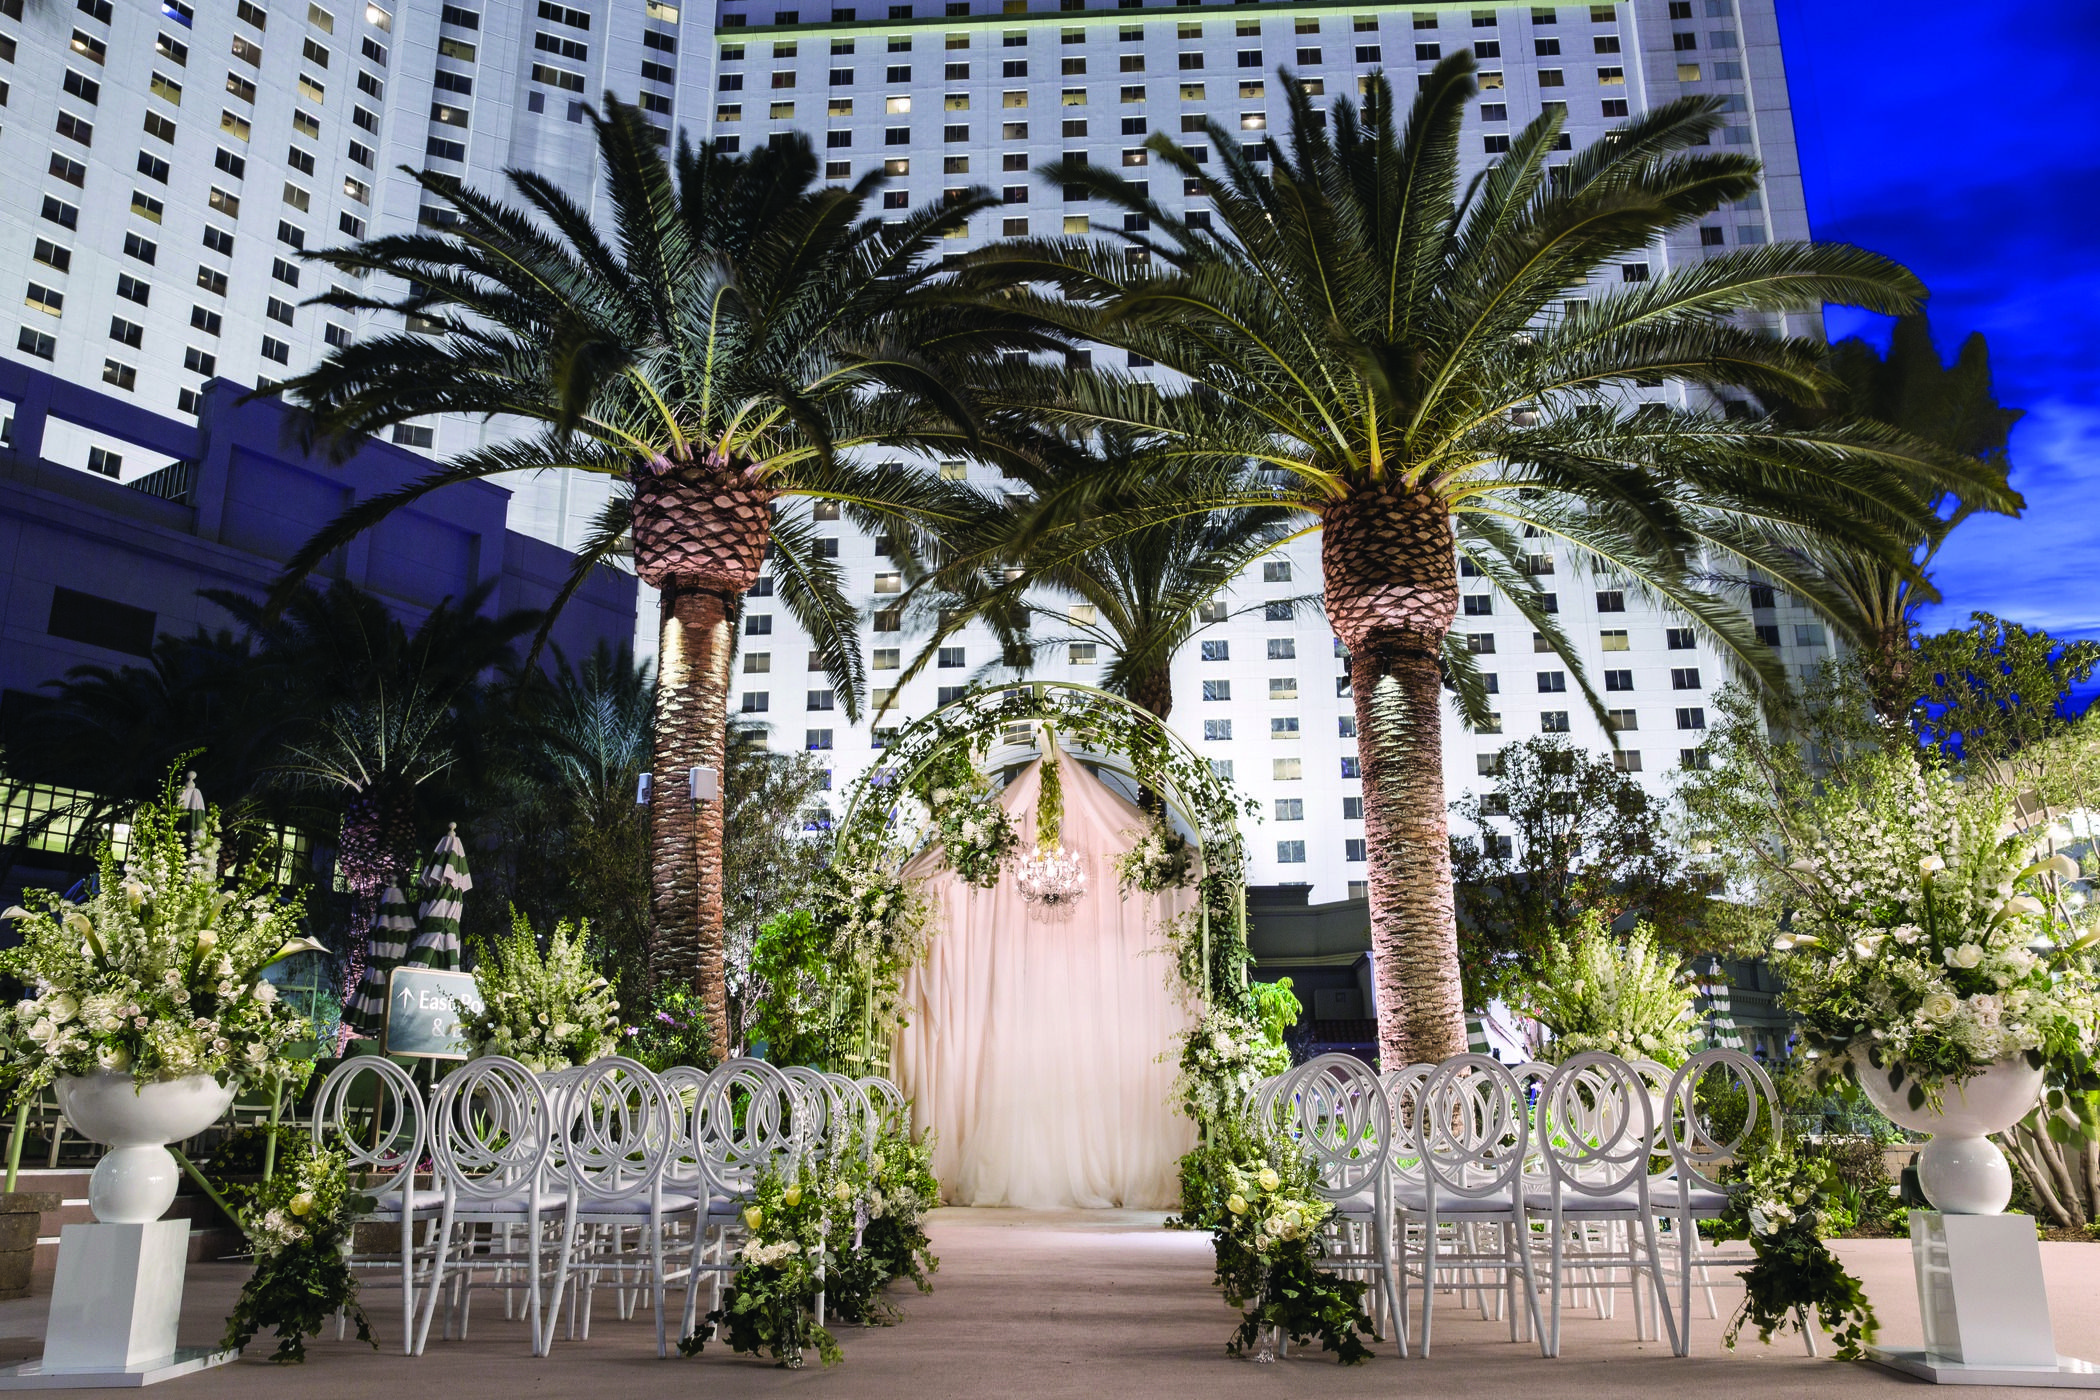 This Outdoor Las Vegas Wedding Venue At Park Mgm Is What Dreams Are Made Of Park M Vegas Wedding Venue Las Vegas Wedding Venue Las Vegas Wedding Inspiration